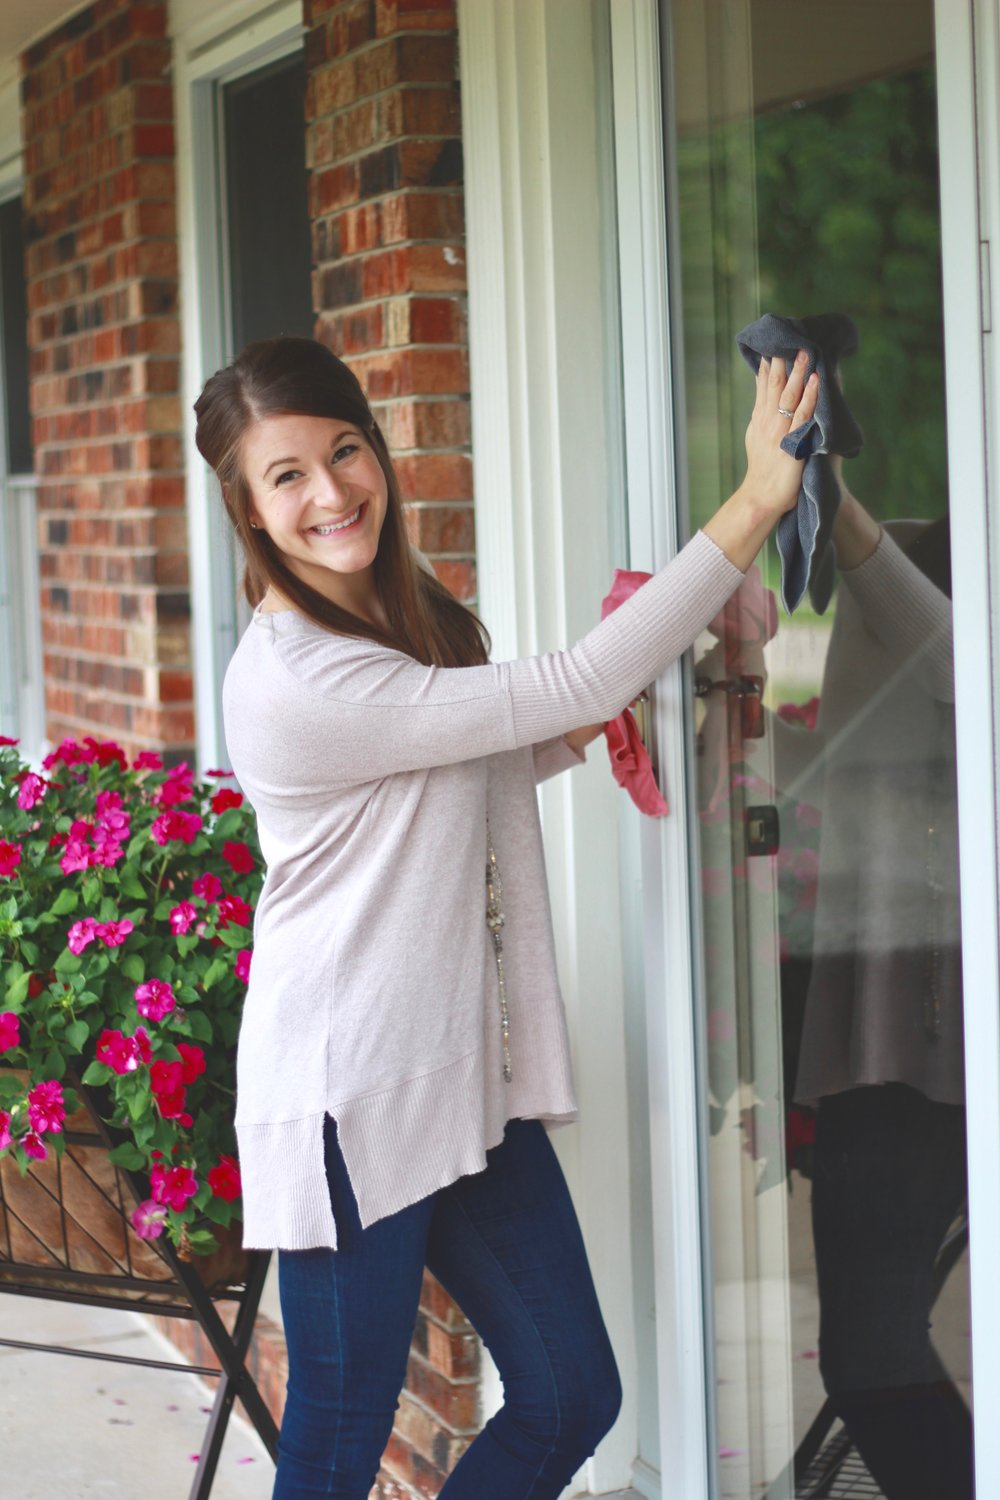 Even cleaning outdoor windows has become so much easier!